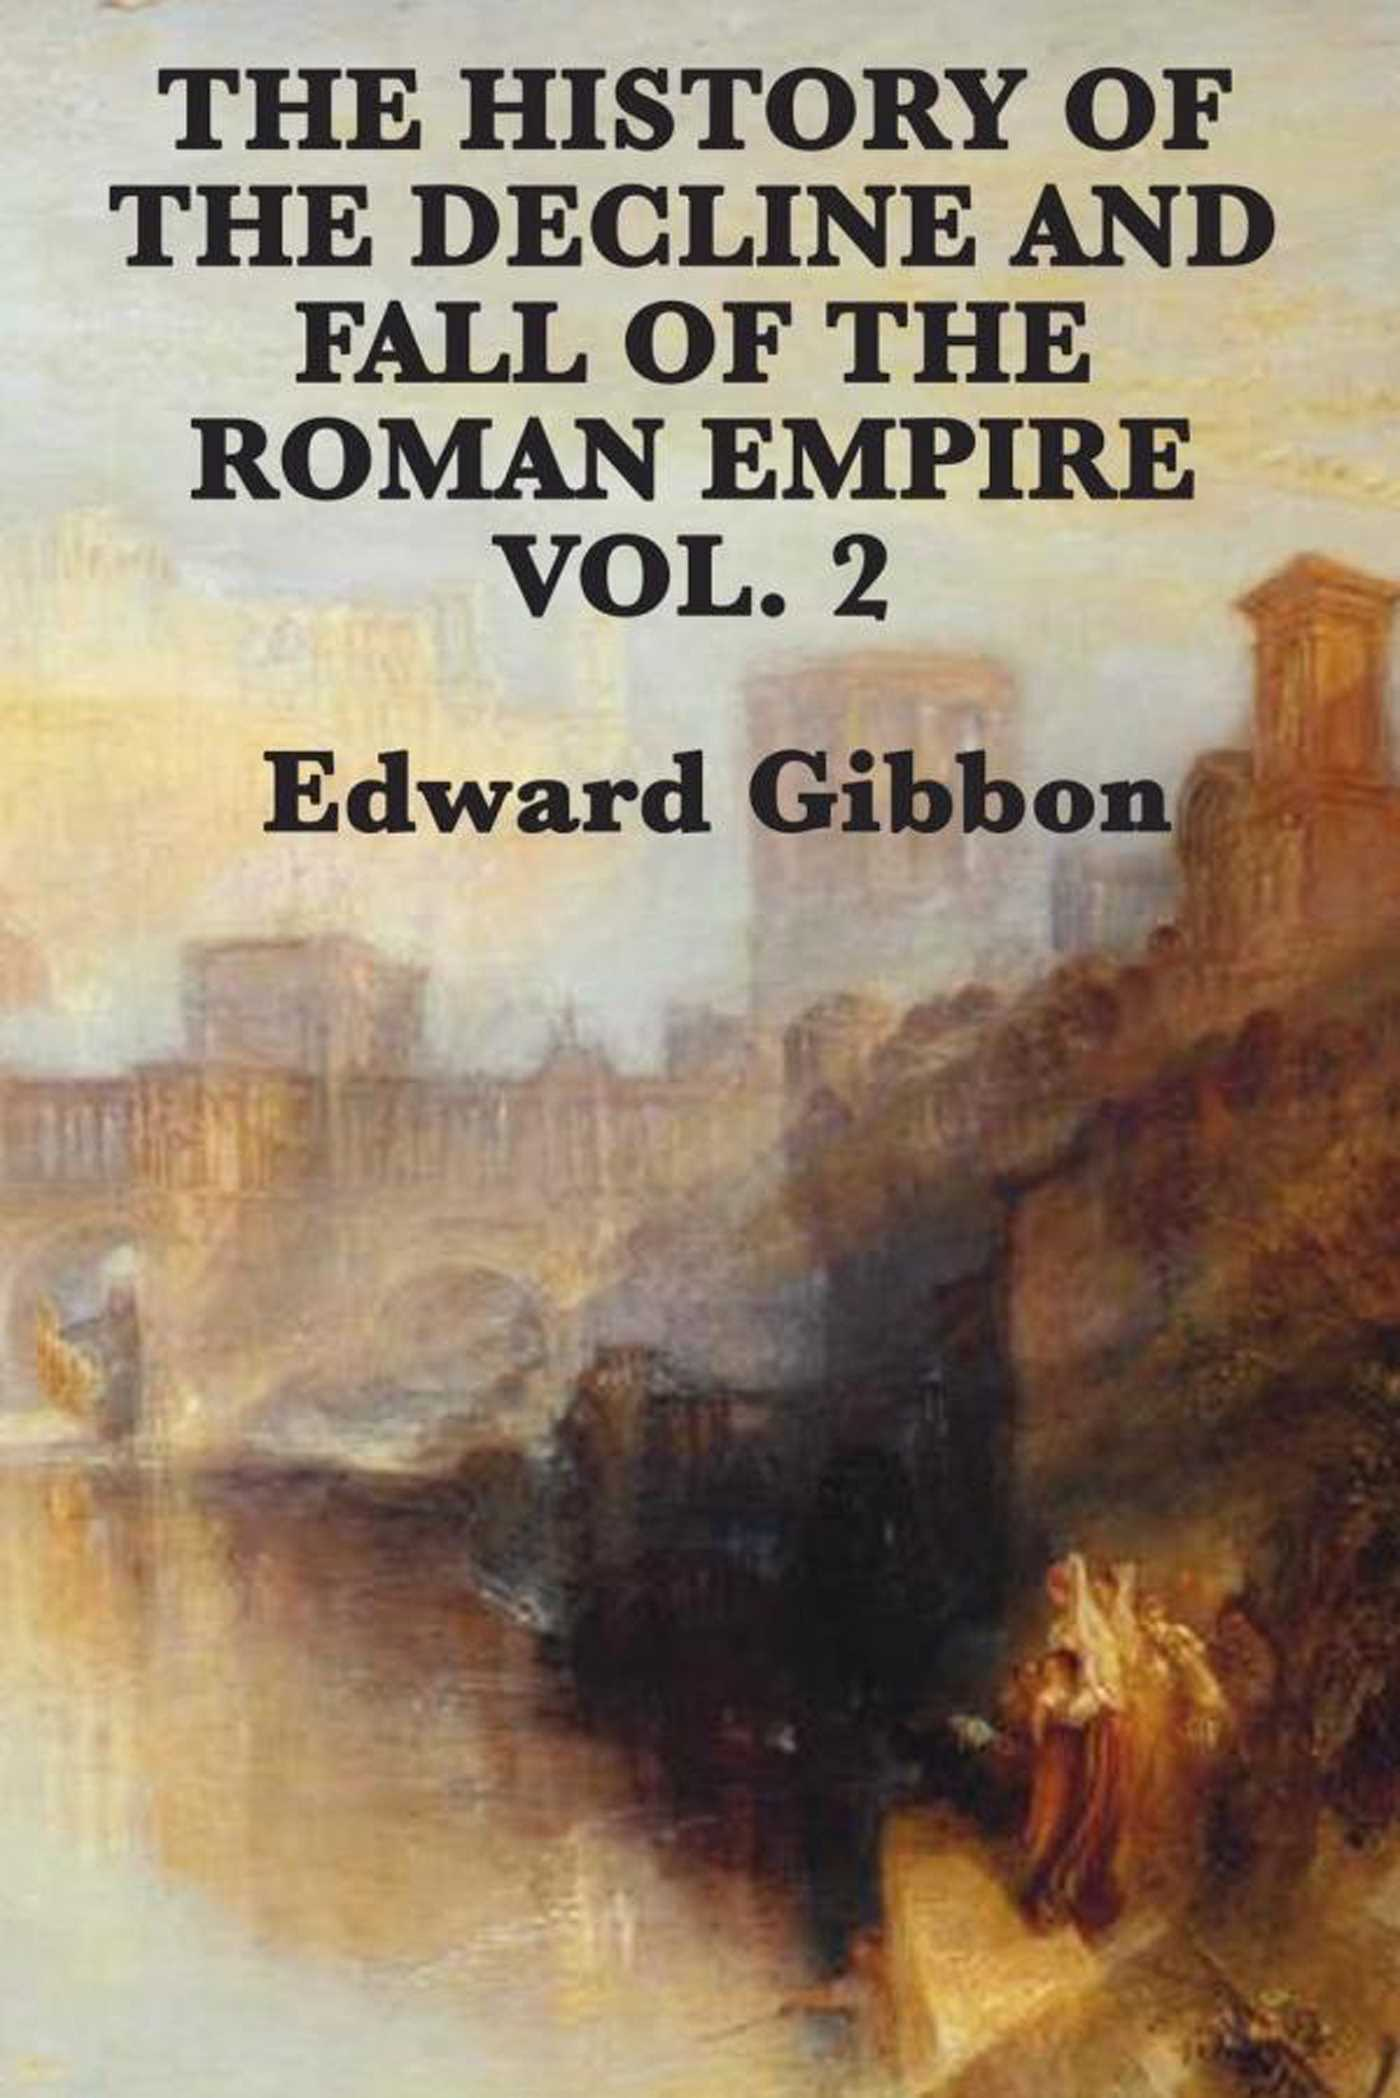 History Of The Decline And Fall Of The Roman Empire Vol 2 9781625584168 Hr